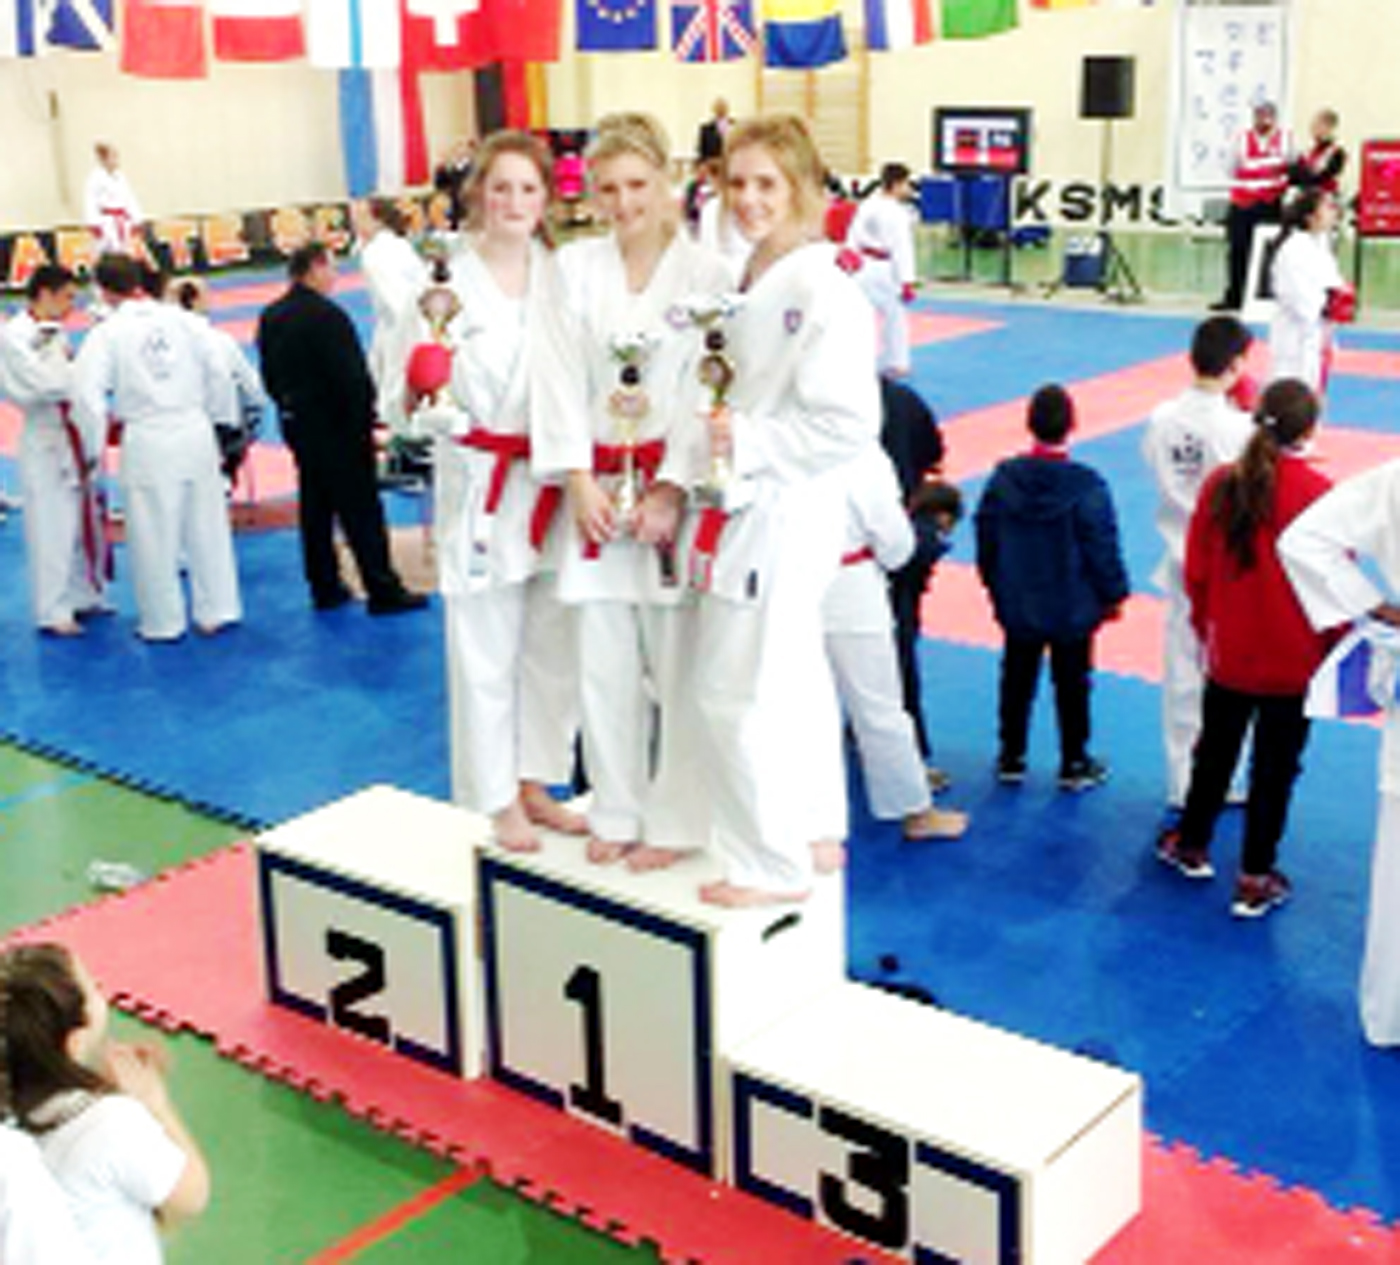 Karate: It's tears to cheers for Imogen